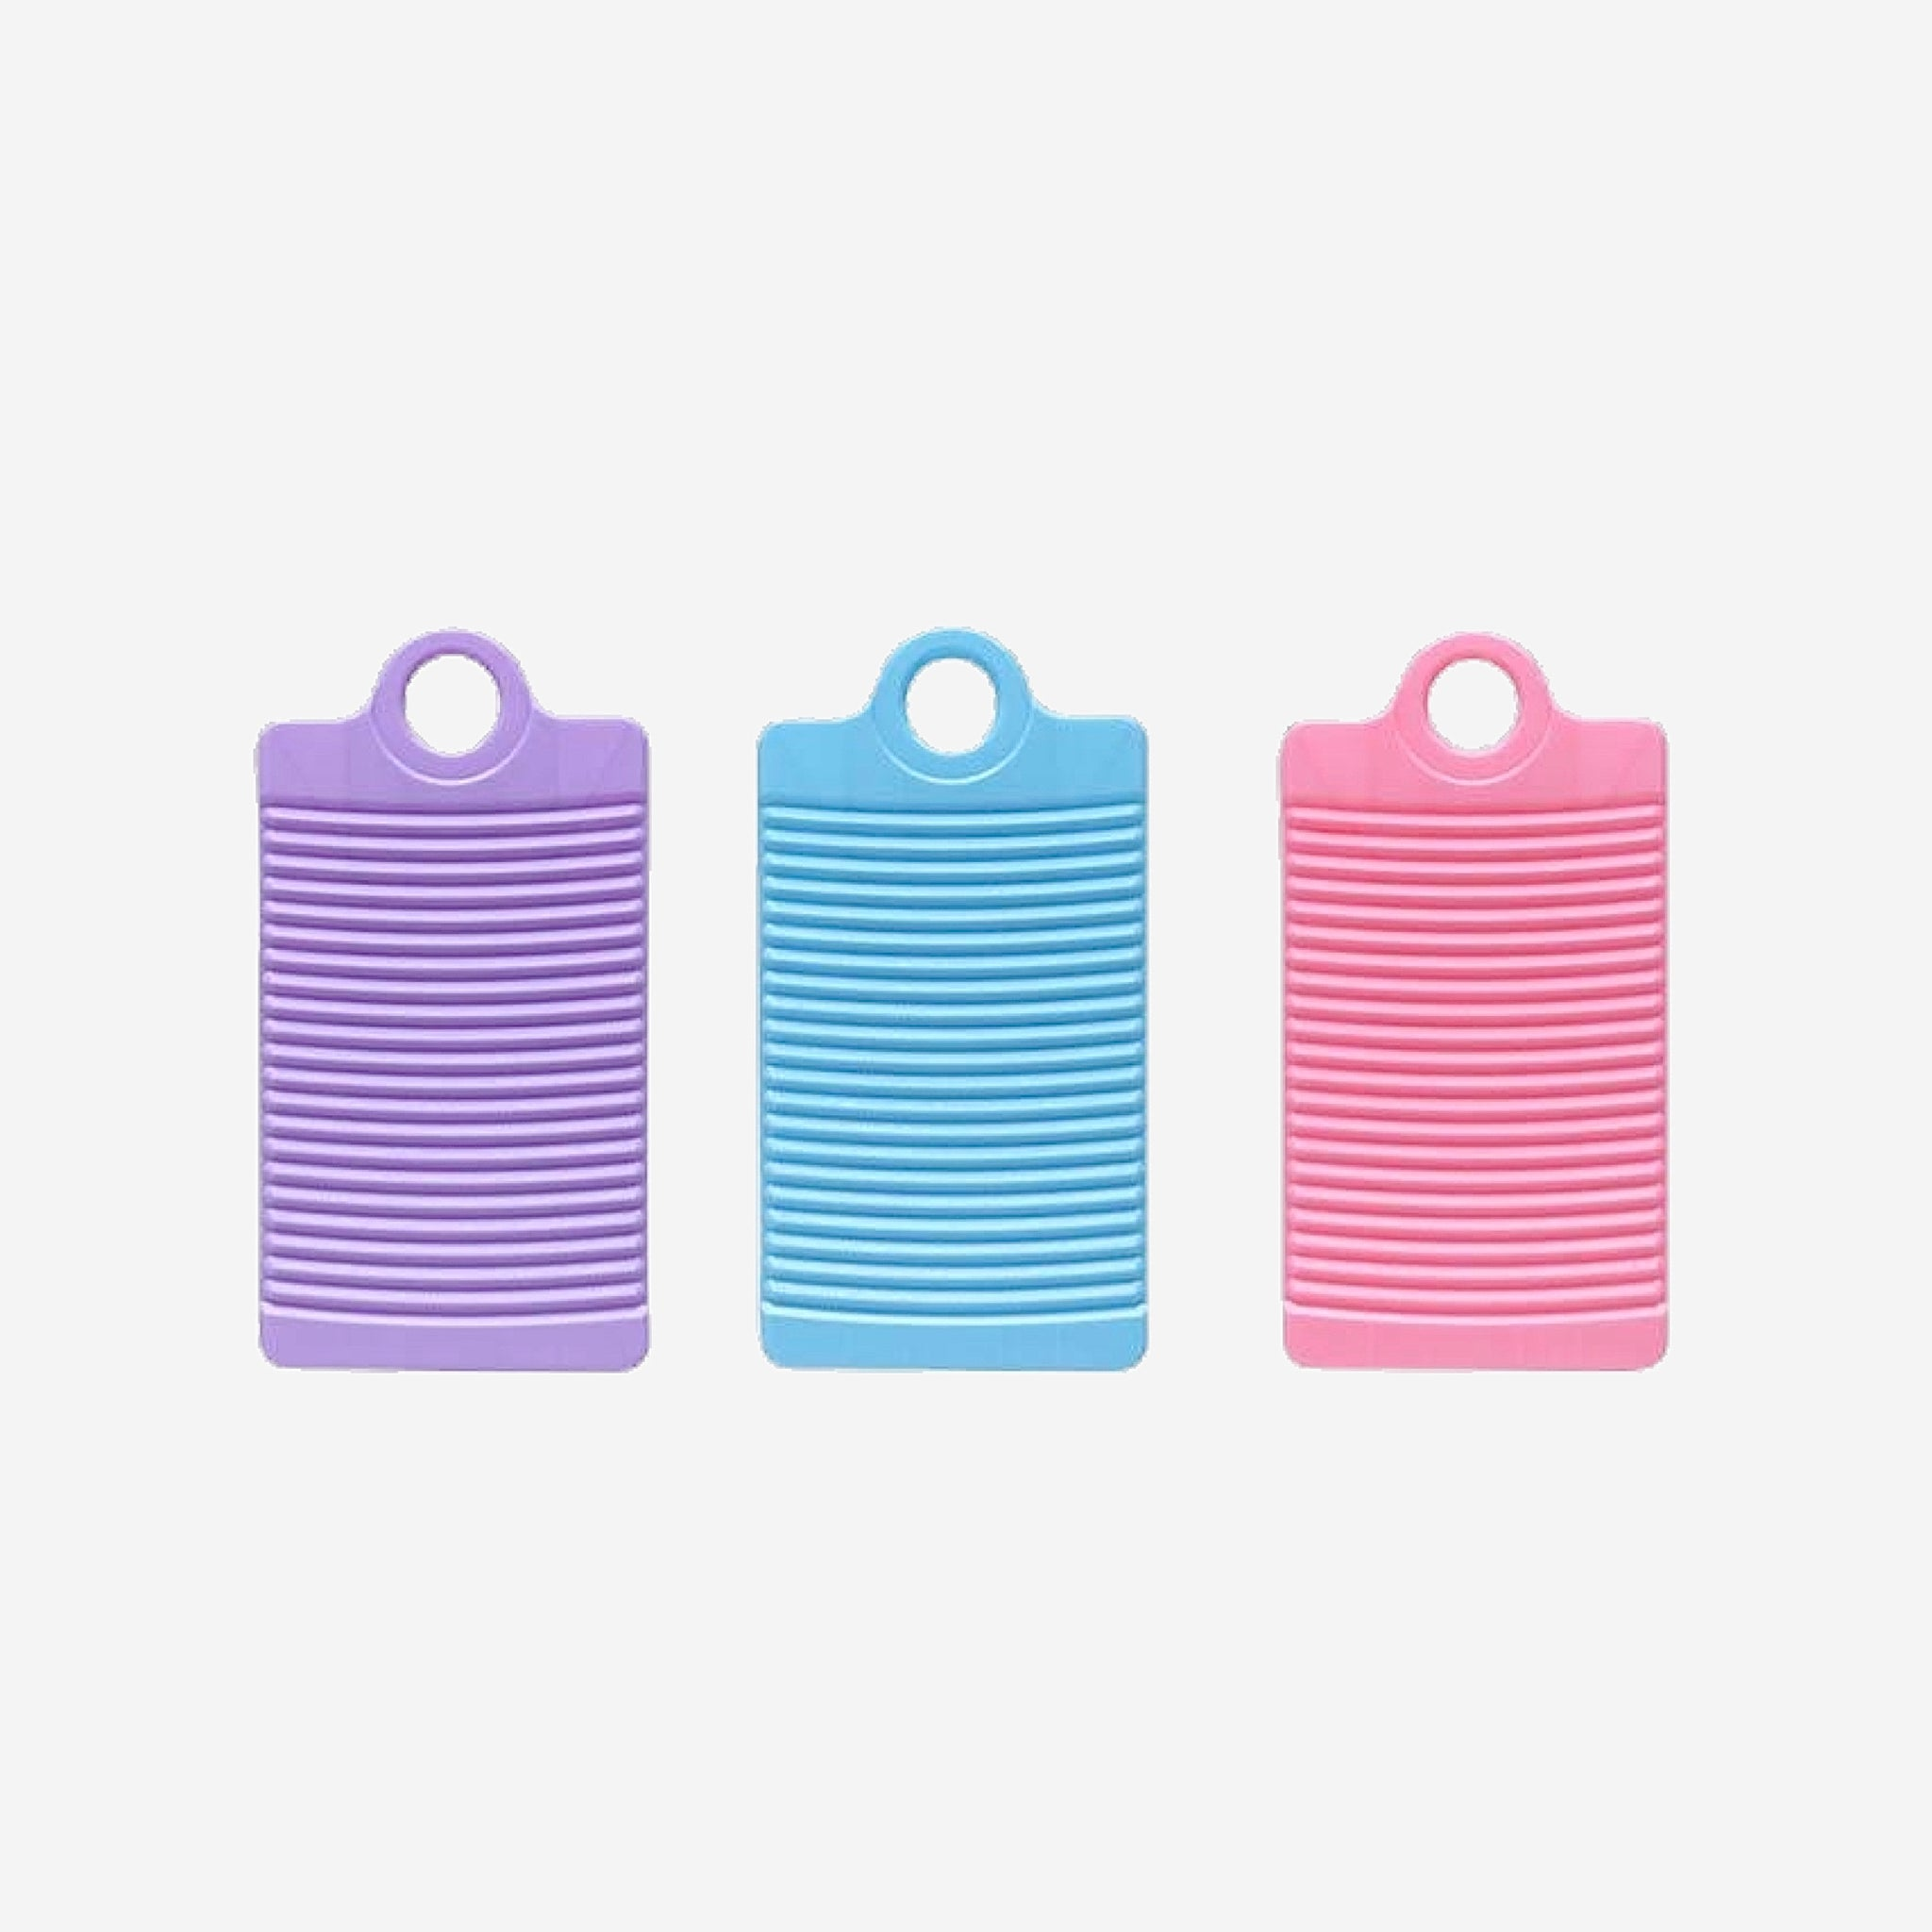 Anti slip Thick Mini Washboard Laundry Accessories Washing Board Clothes Cleaning Tools Trending